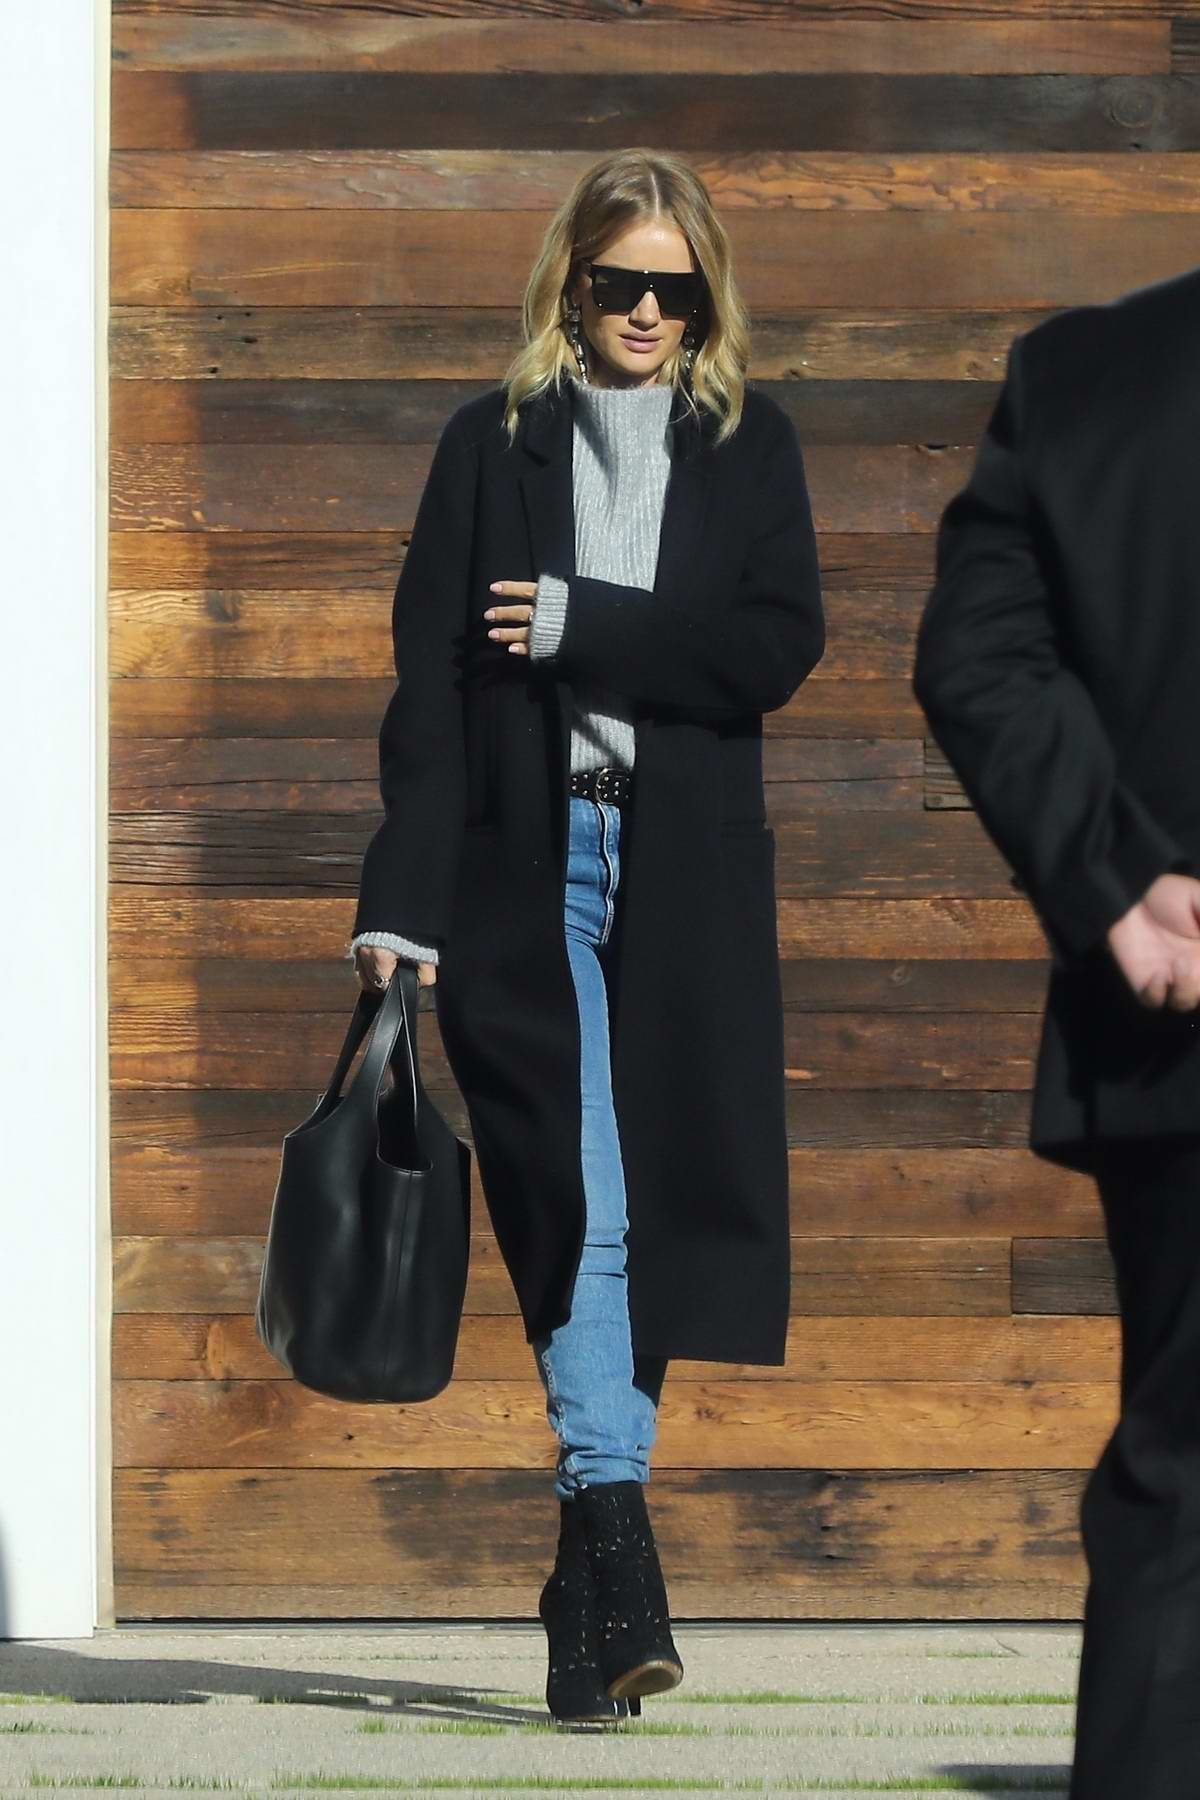 Rosie Huntington-Whiteley heads for a meeting in a long black coat with matching shoes in Los Angeles